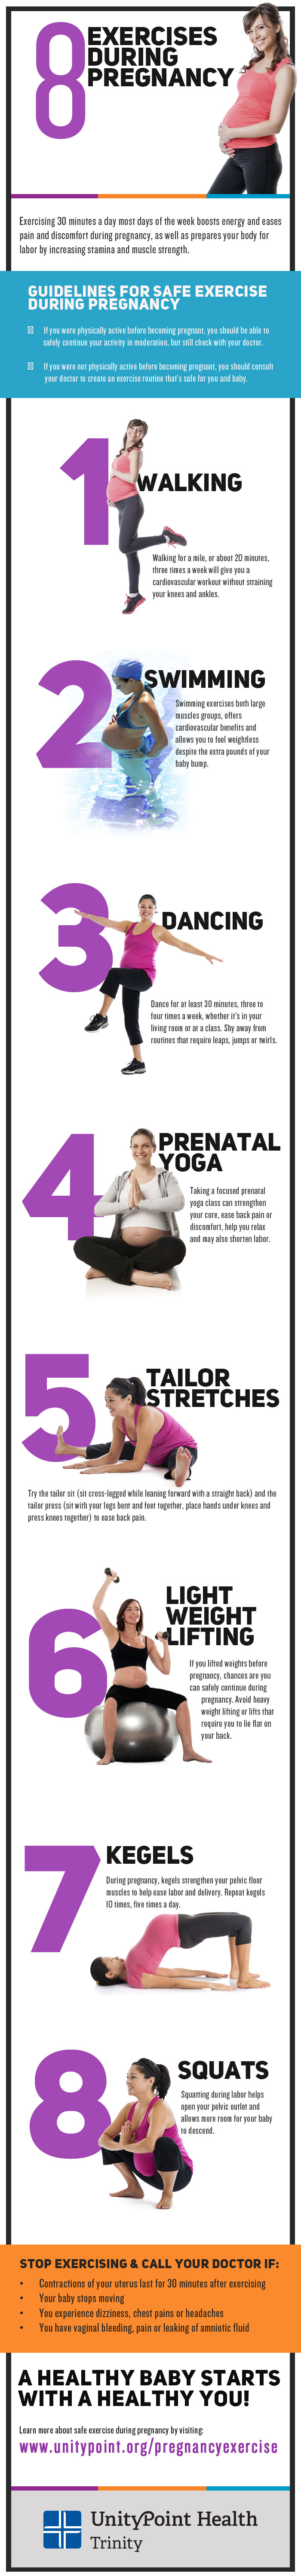 Exercises during Pregnancy